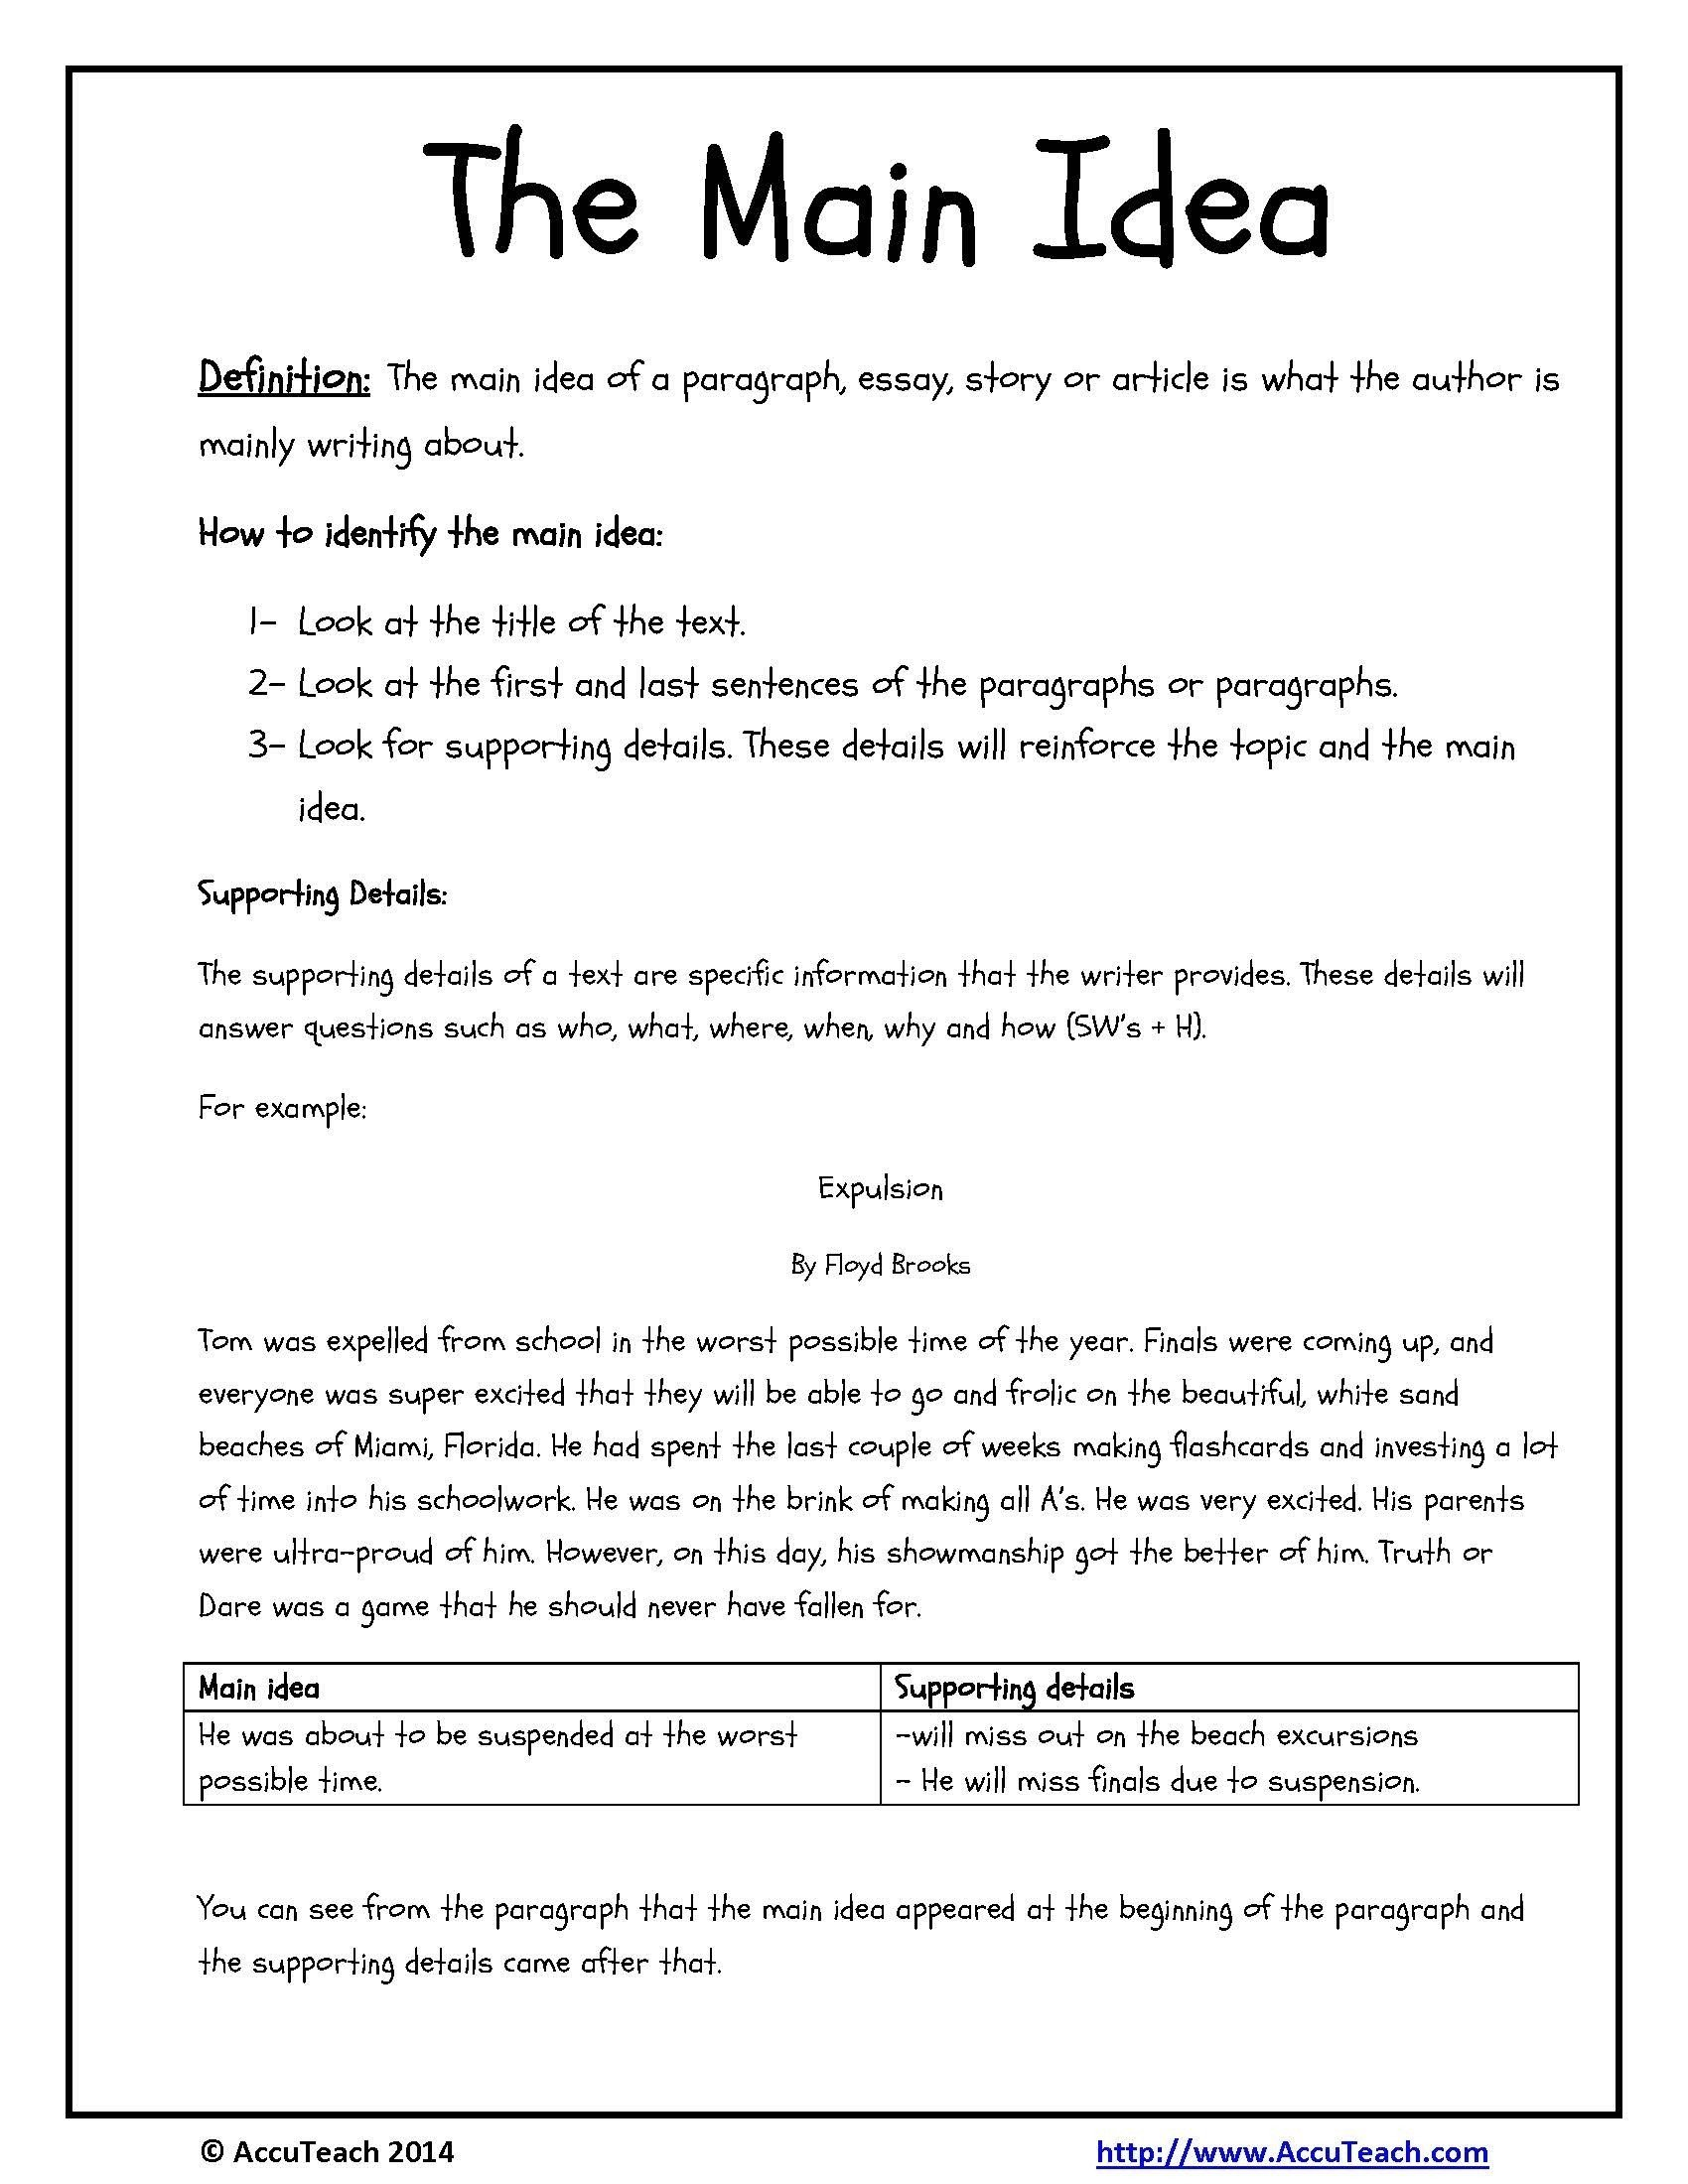 10 Stunning Main Idea And Supporting Details Worksheet 21 inspirational pics of main idea and supporting details worksheets 2021